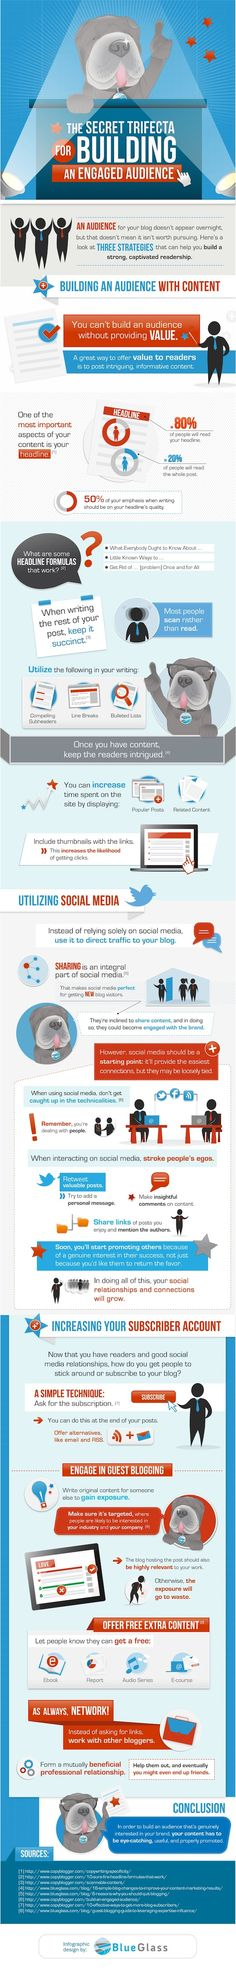 Engage your Online Followers #Infographic #SMM #Marketing